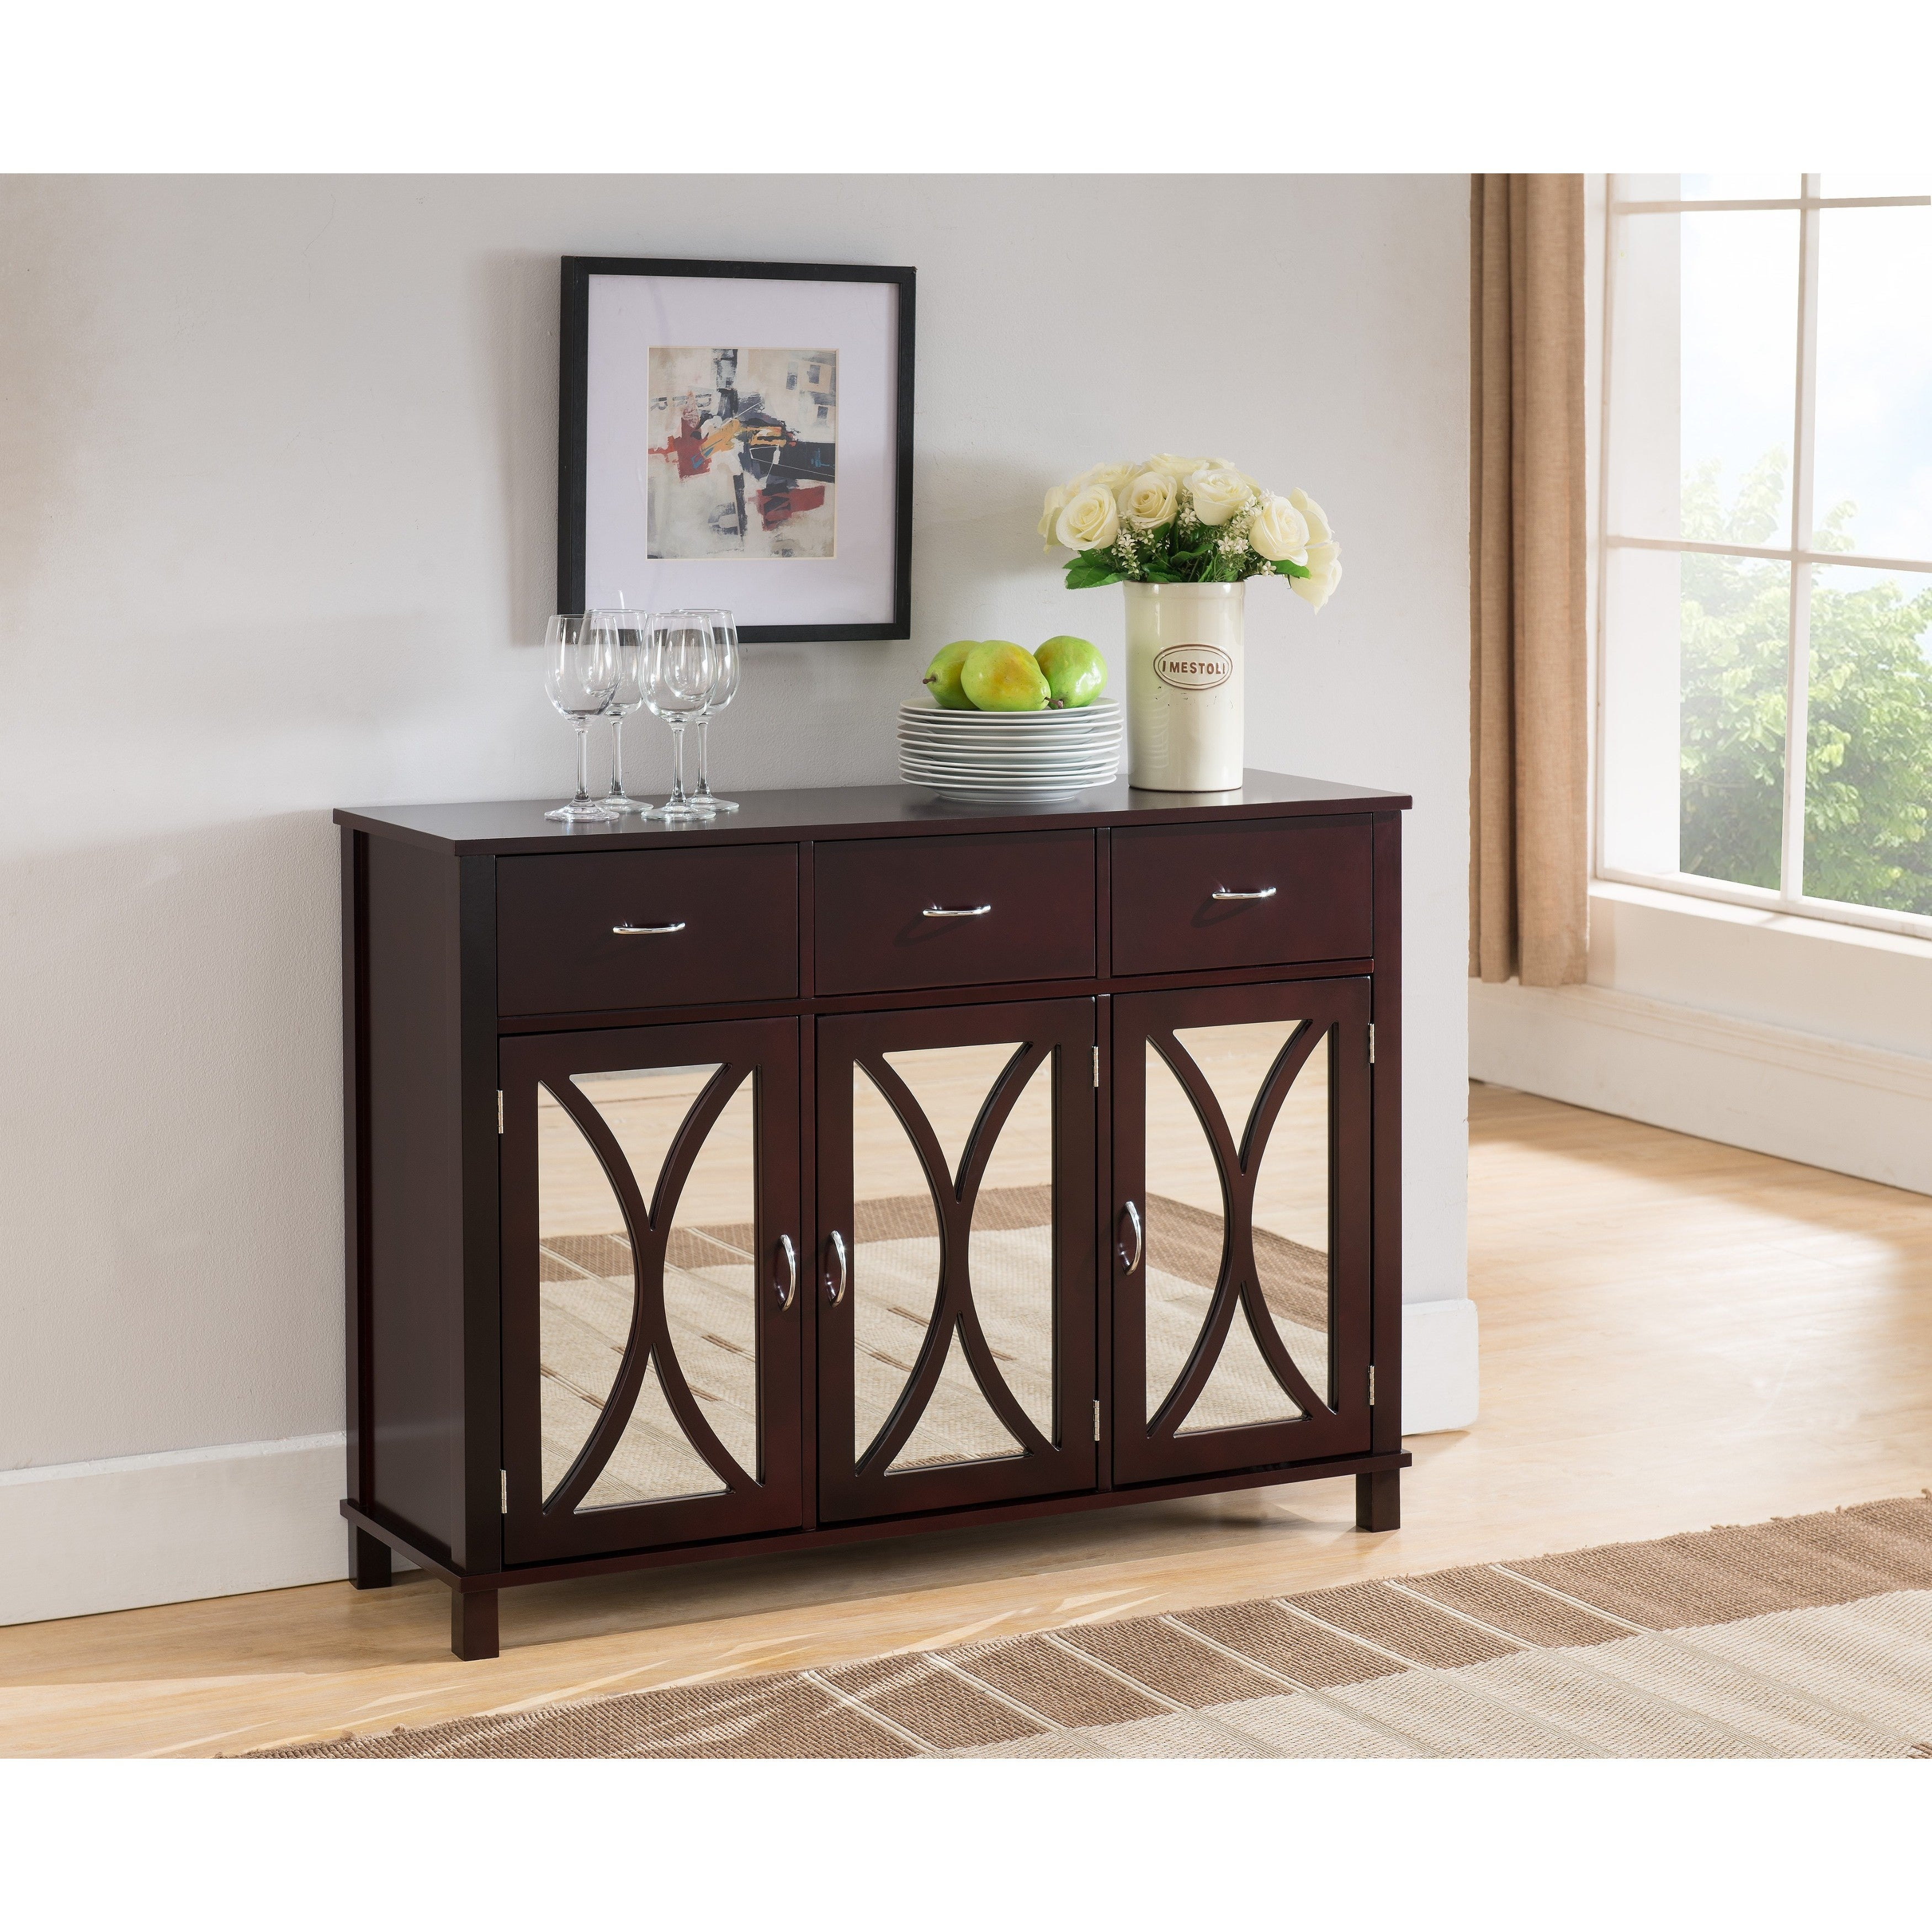 K and b furniture co inc espresso wood door and drawer console table